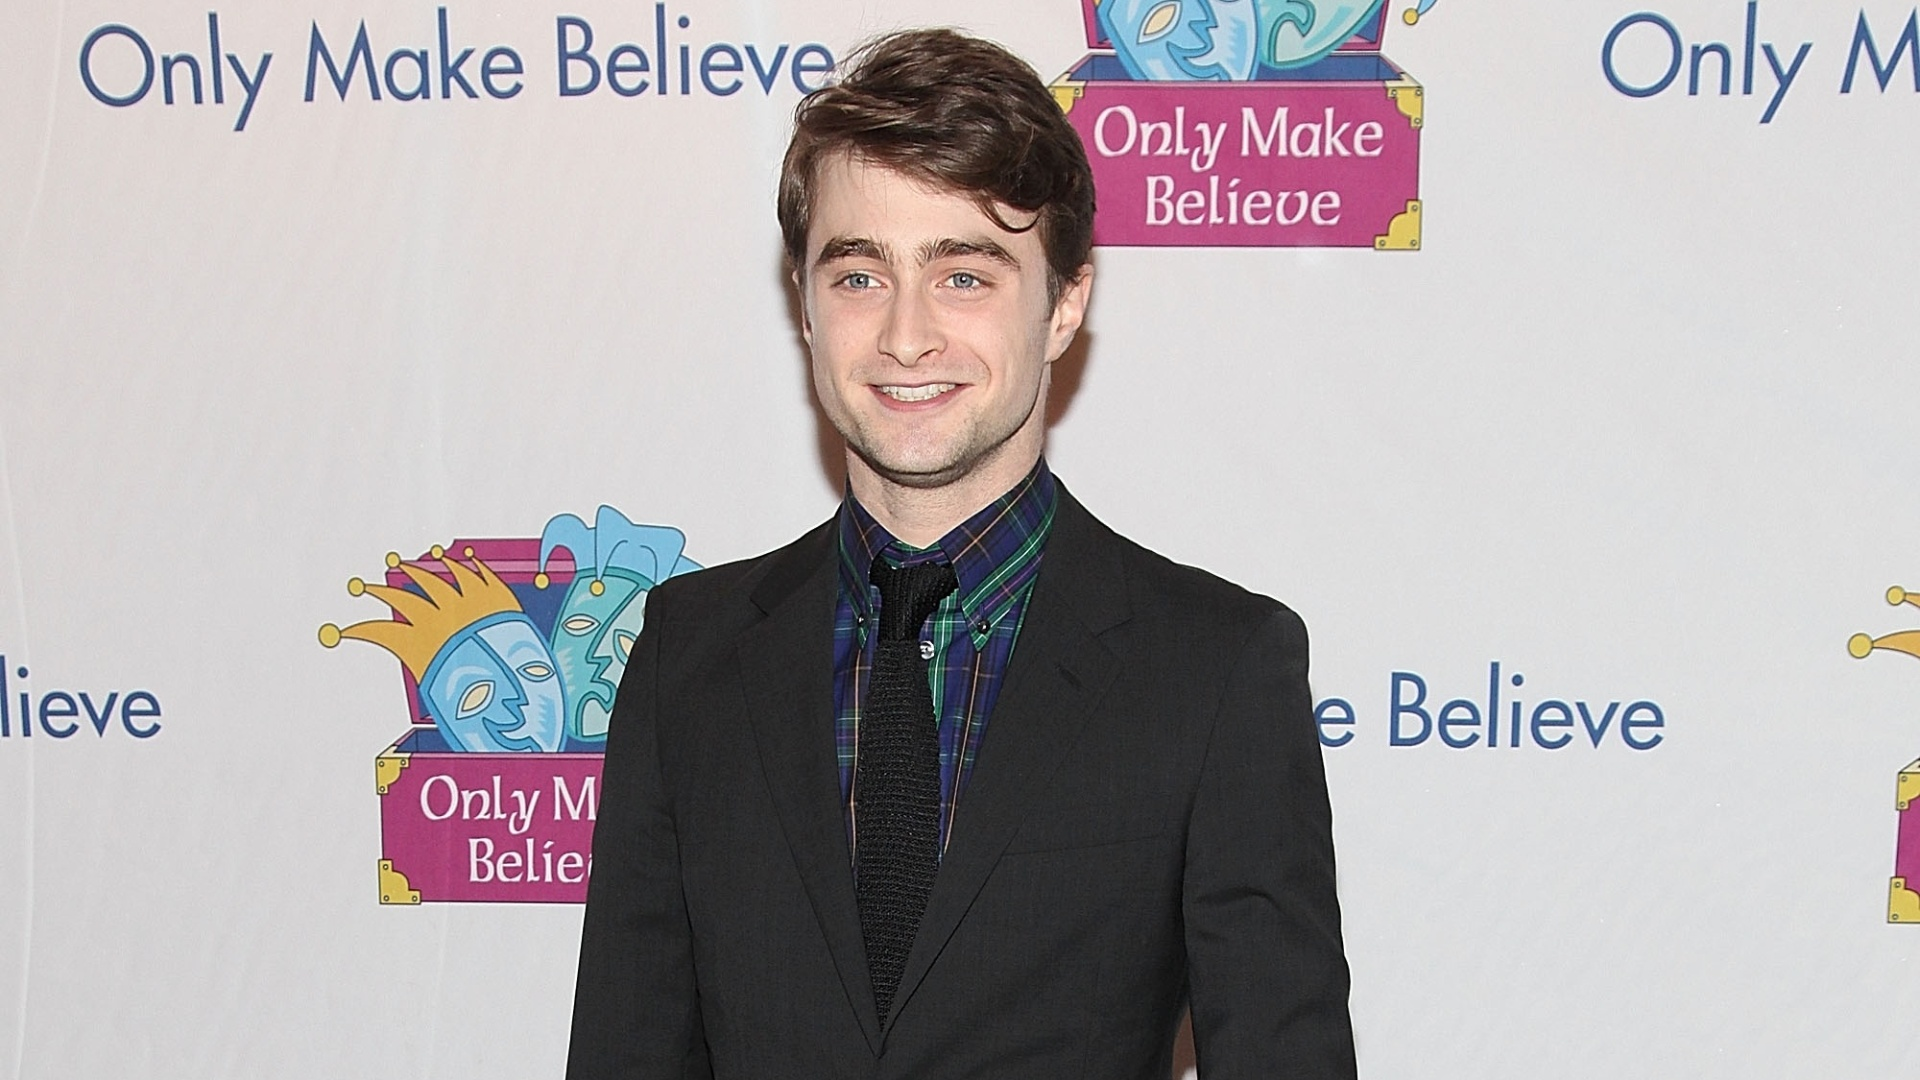 o ator Daniel Radcliffe participa do jantar anual 